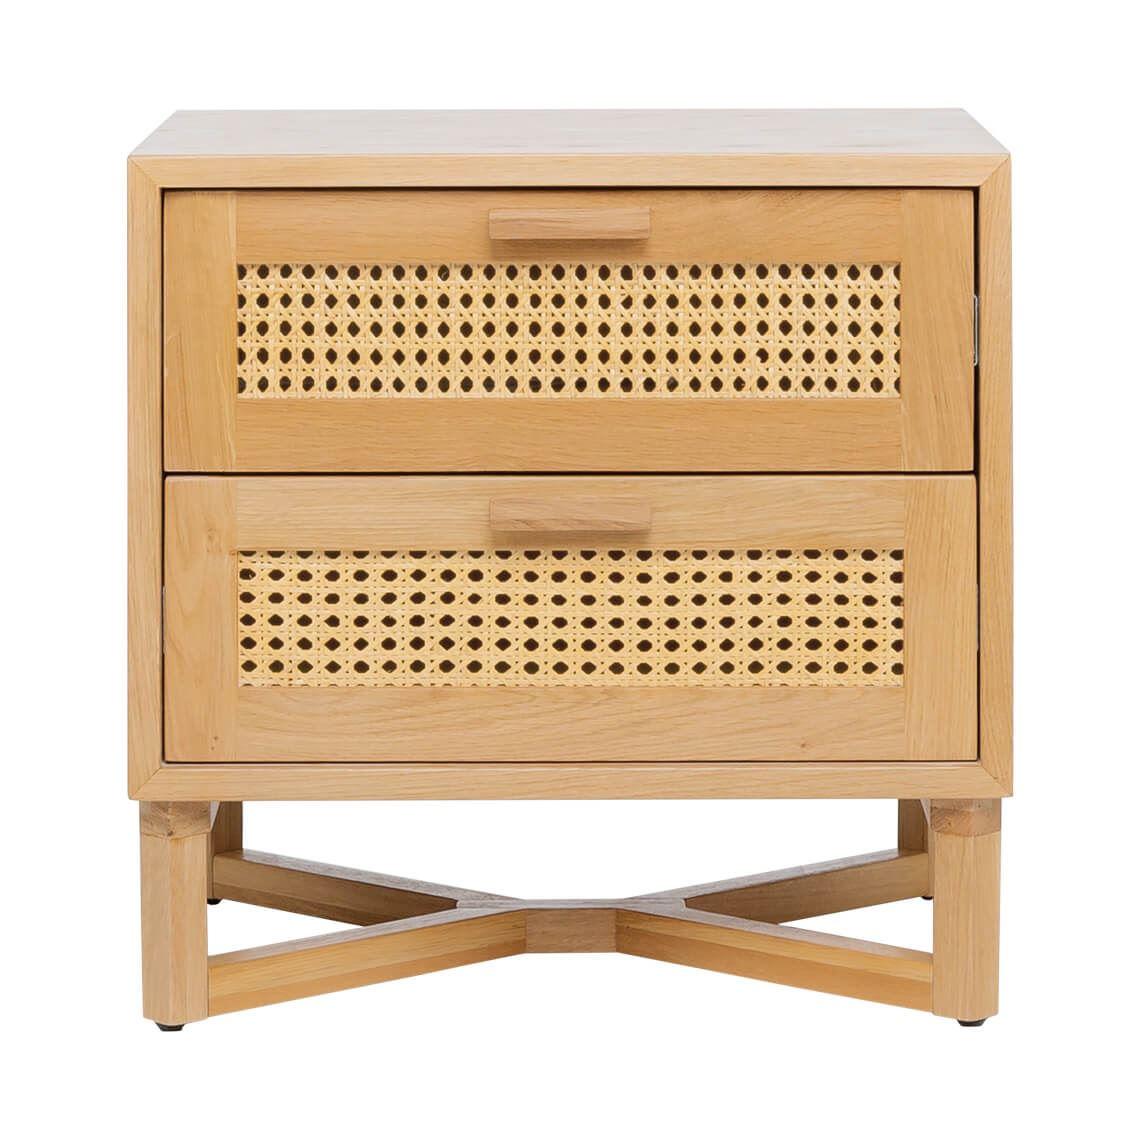 raffles drawer dresser natural rattan home minsmere cane accent table bedroom console bedside lamps narrow black end inch sofa college room ideas gold metal battery desk light